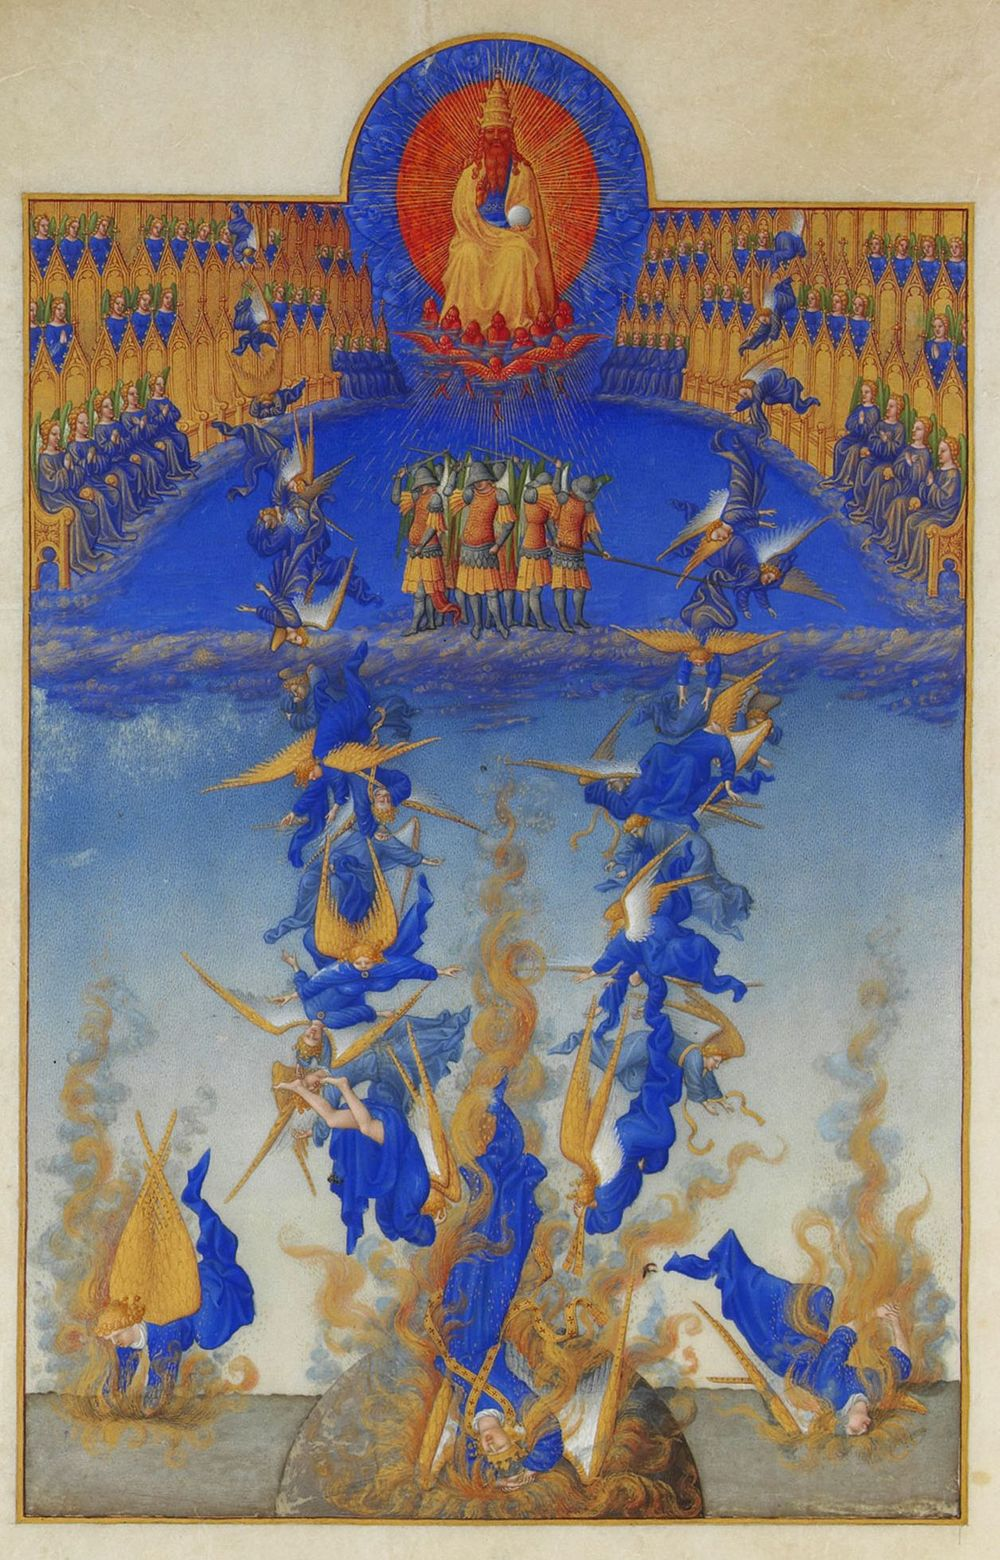 Limbourg Brothers, La chute des anges rebelles (via Wikimedia Commons)